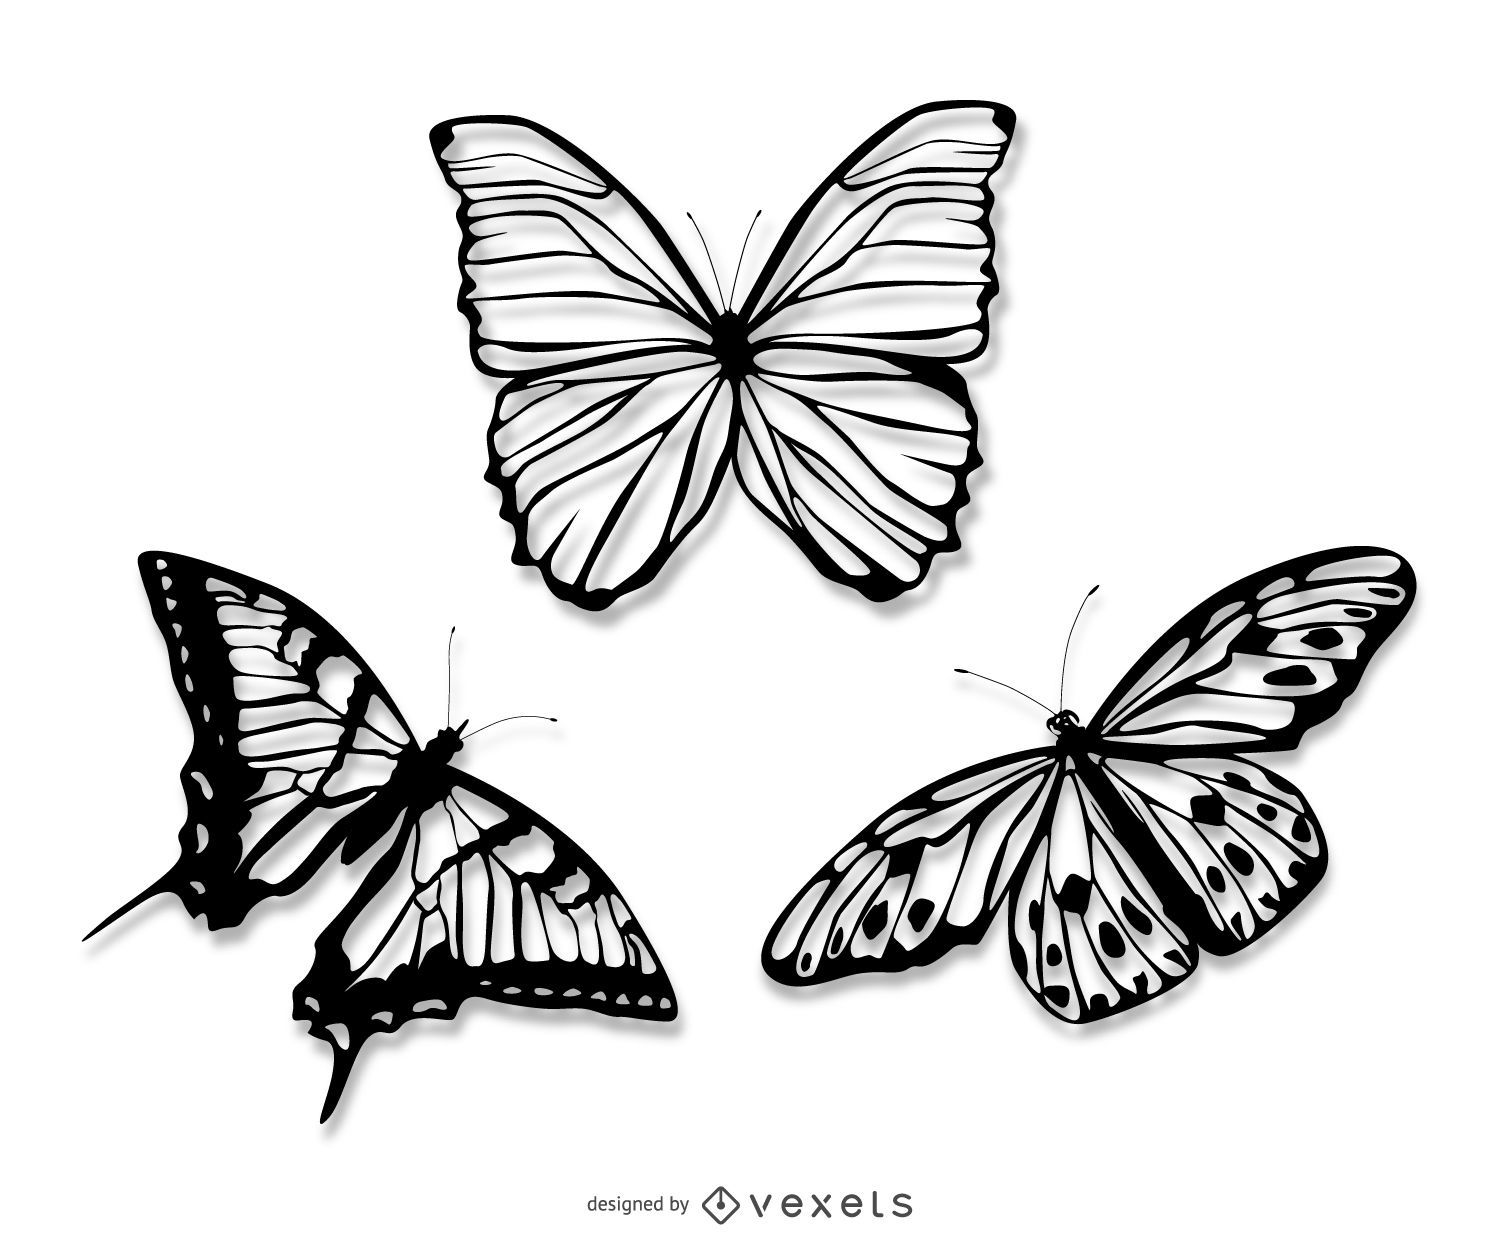 Realistic butterfly illustrations